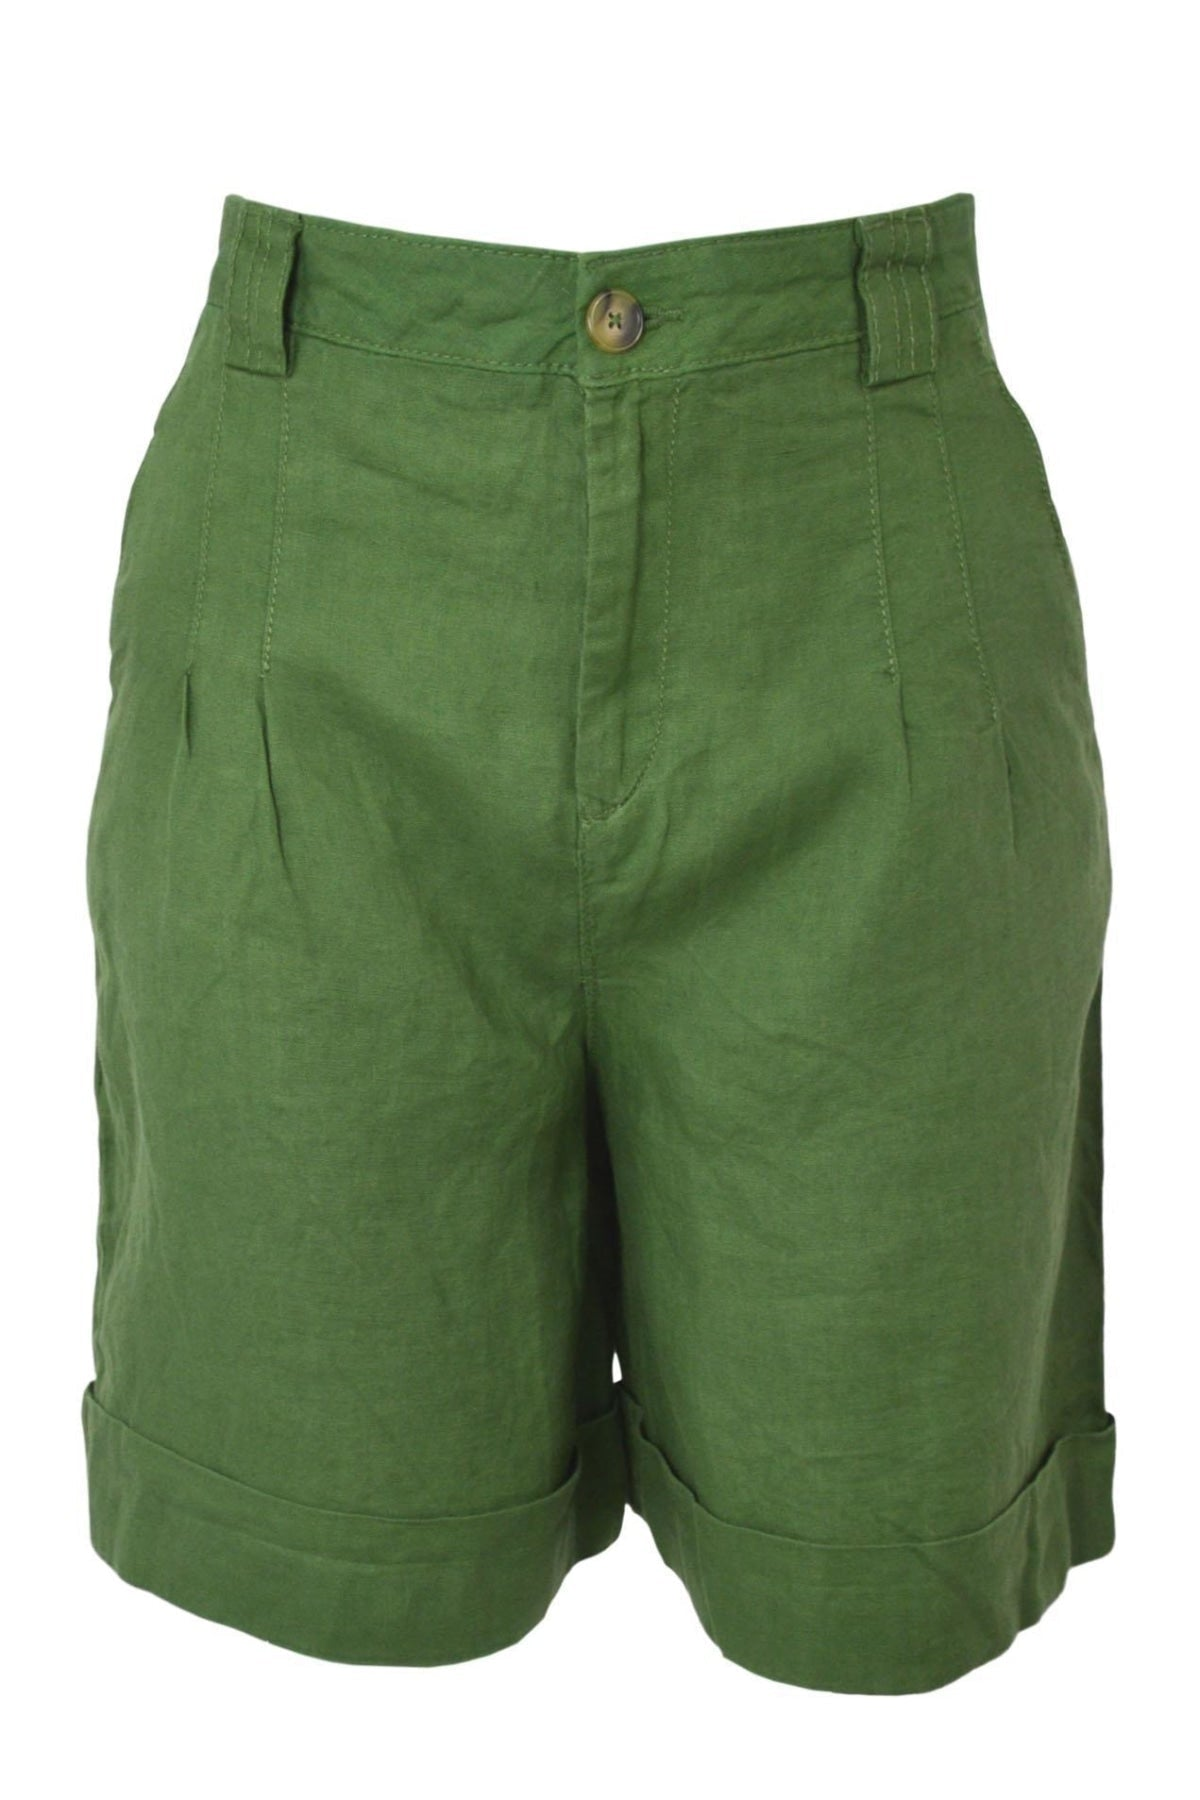 United Colors Of Benetton Cotton Bermuda Shorts | 8 / Olive Secret Label